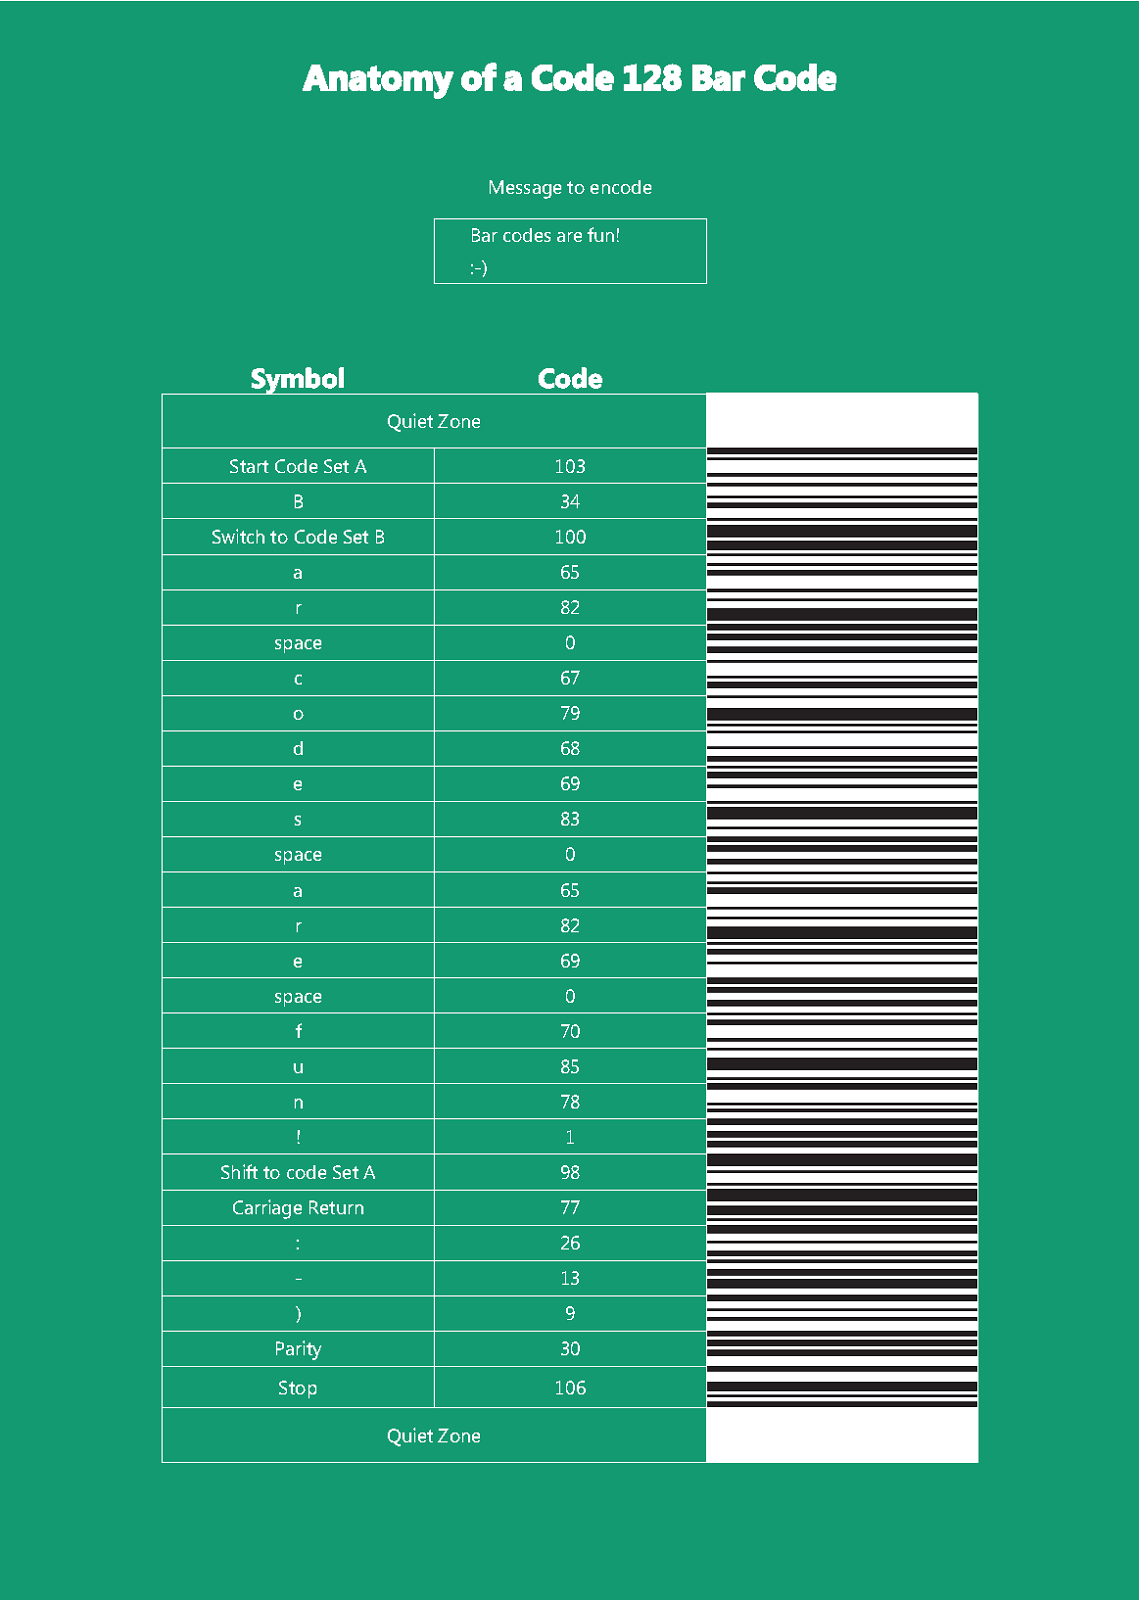 barcode explanation